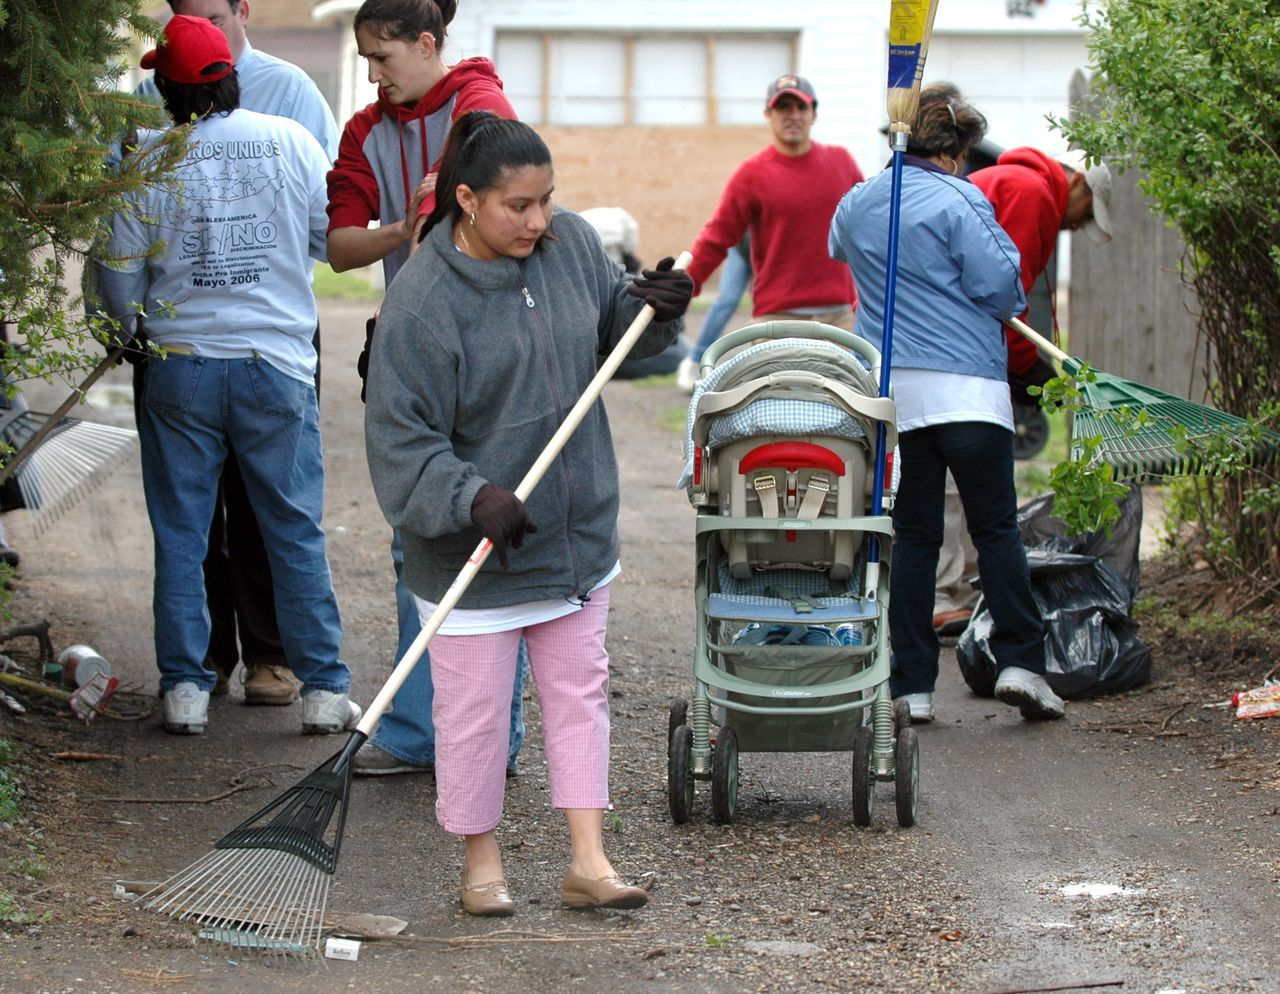 Mariela Tellez rakes an alley on South Bend's west side during an immigration day of action, Monday, May 1, 2006, in South Bend, Ind. The clean-up was part of actions taken by immigrants and their supporters who are expected to skip work and school and boycott businesses across the country Monday to protest proposed crackdowns on illegal immigration. (AP Photo/Joe Raymond) noodzakelijk werk dat de Amerikaan laat liggen gebeurt door illegalen. Straatvegen, kinderopvang, etc. Foto AP, bewerking fotostudio nrc.next